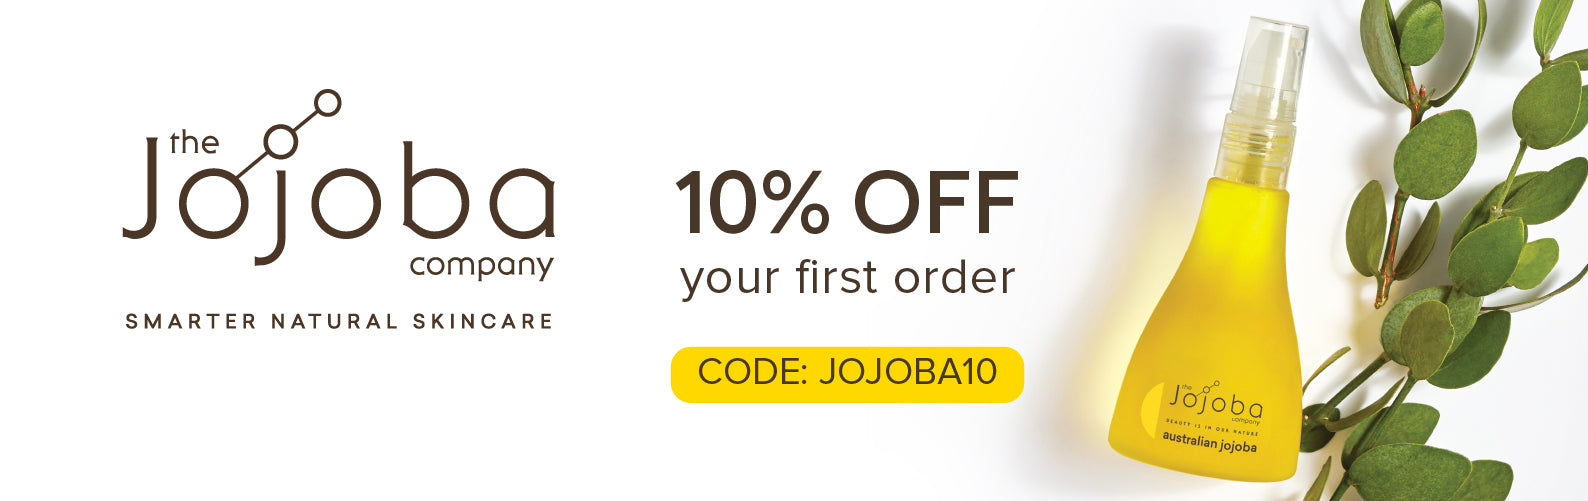 the jojoba company 10% off your first order bella scoop